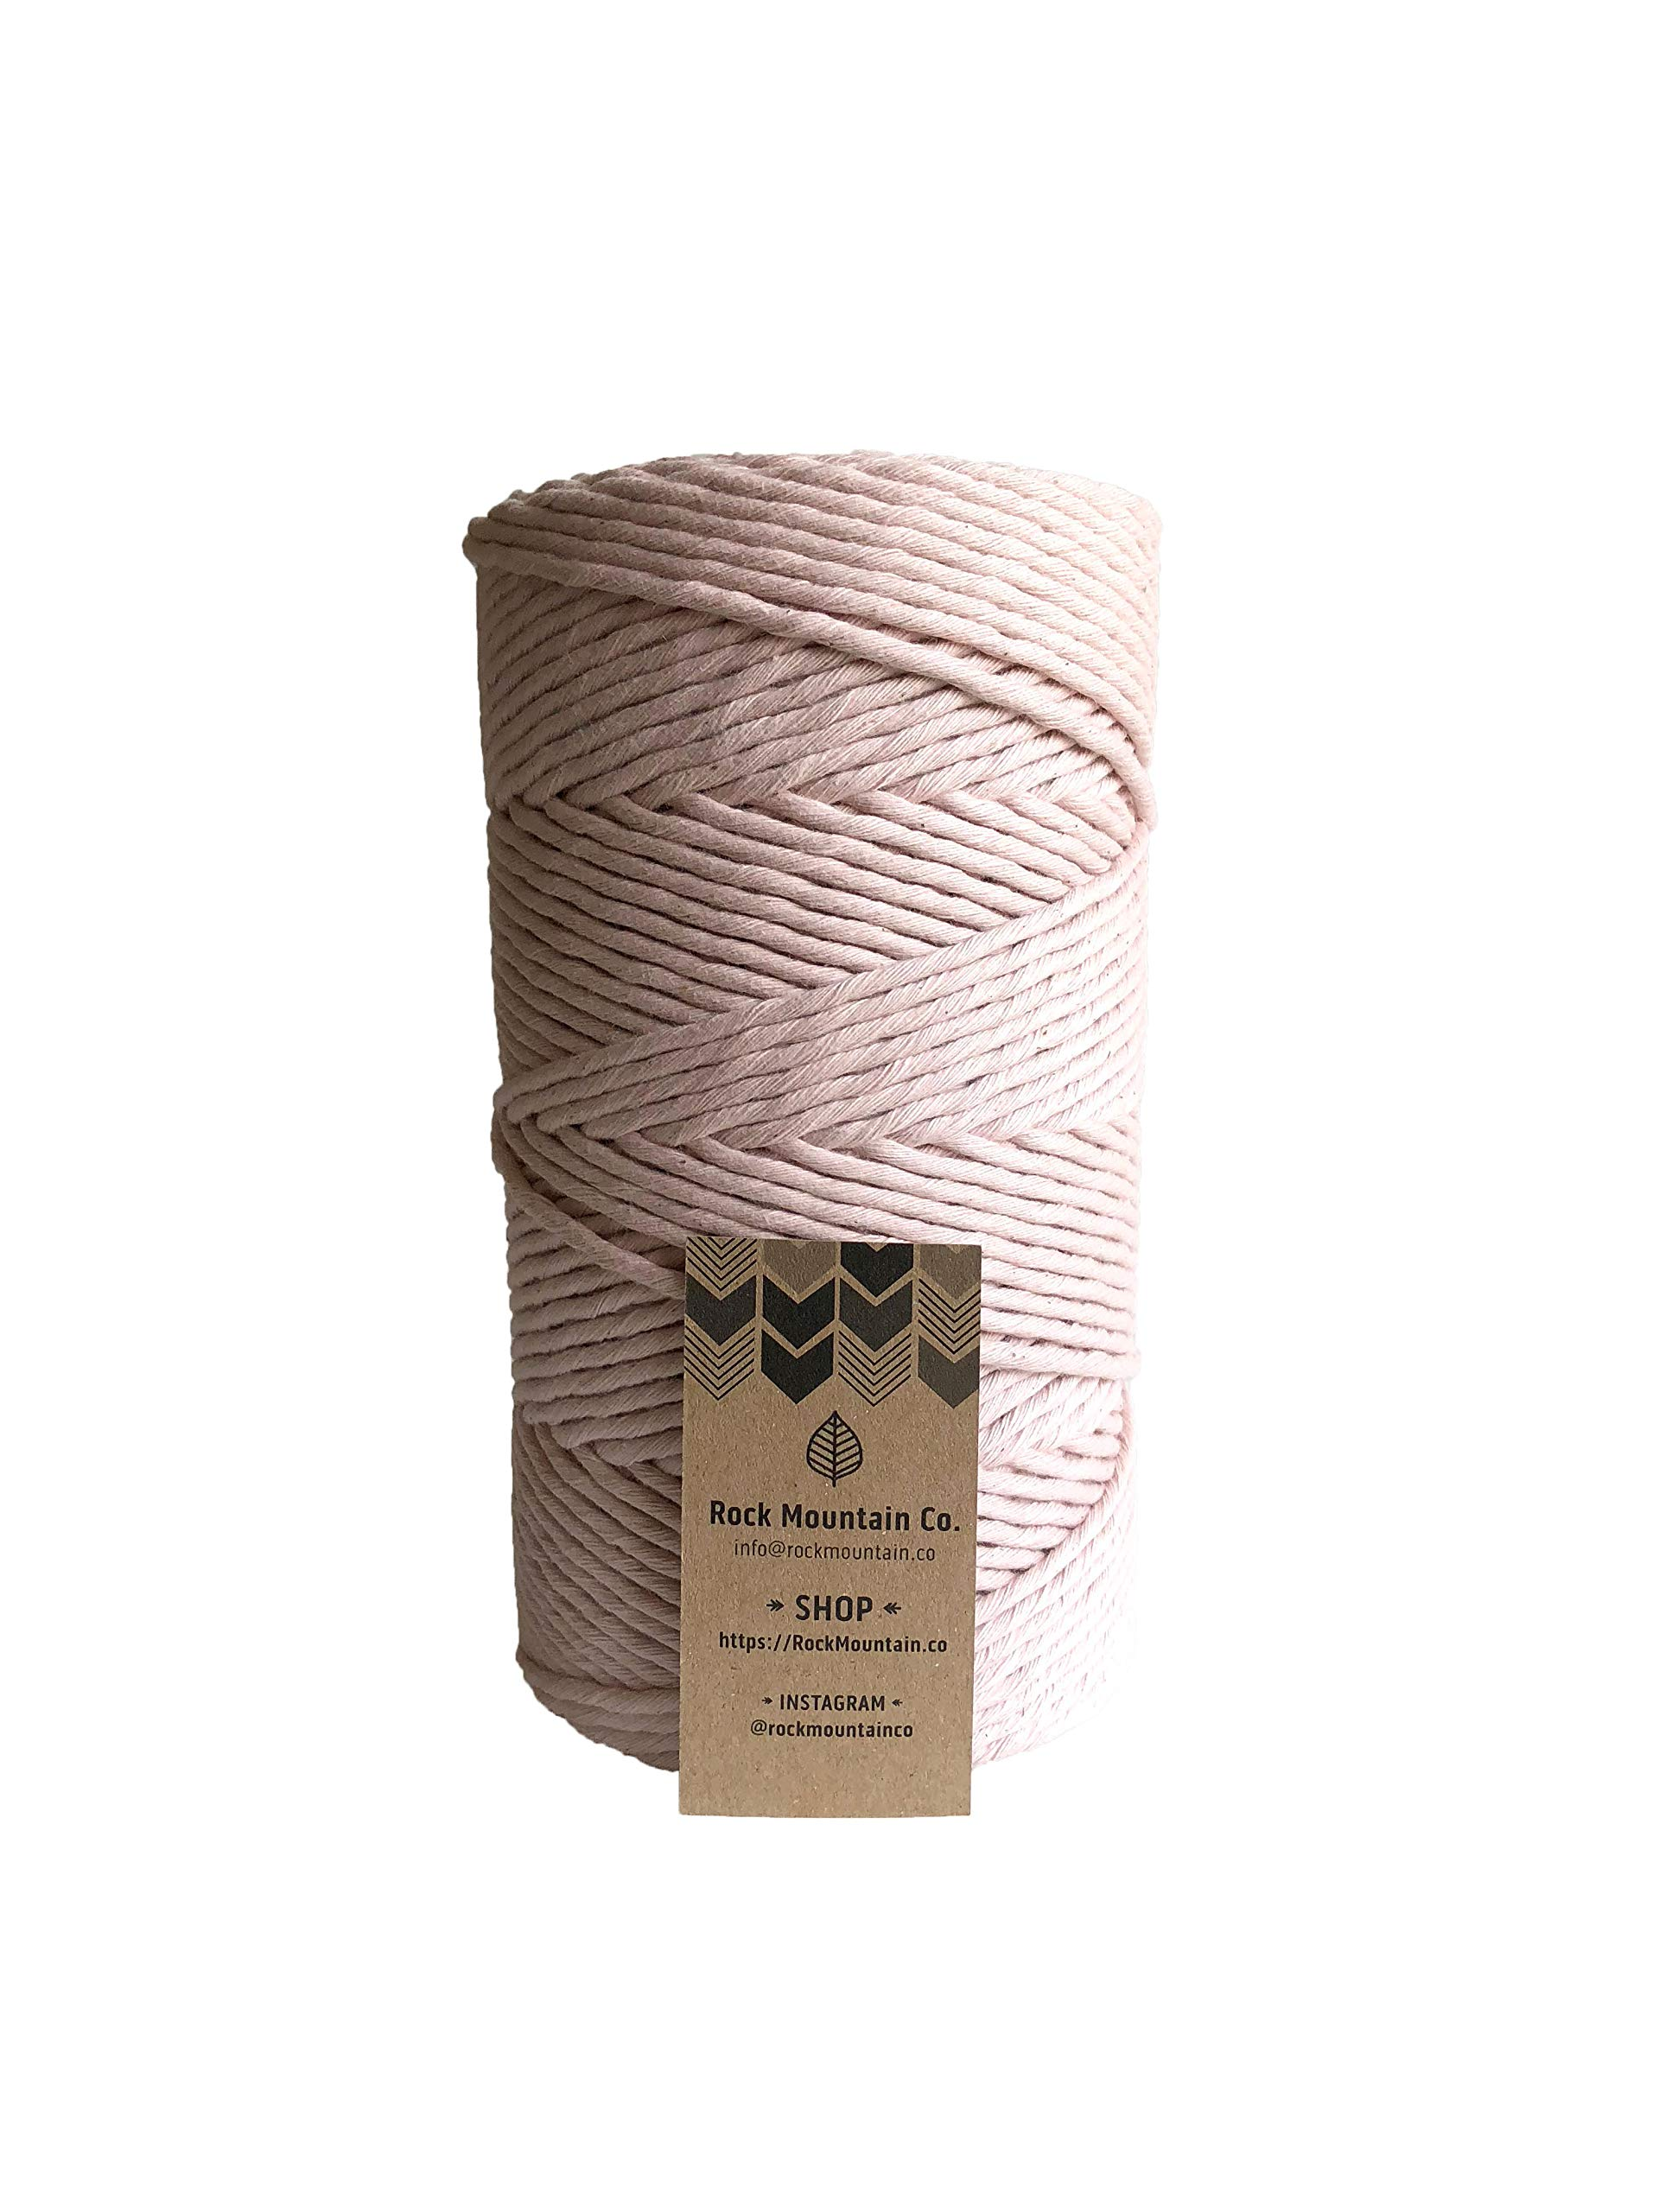 Light Pink Macrame Cord / 4mm Single Strand Cotton Fiber Art Rope/Cotton Candy